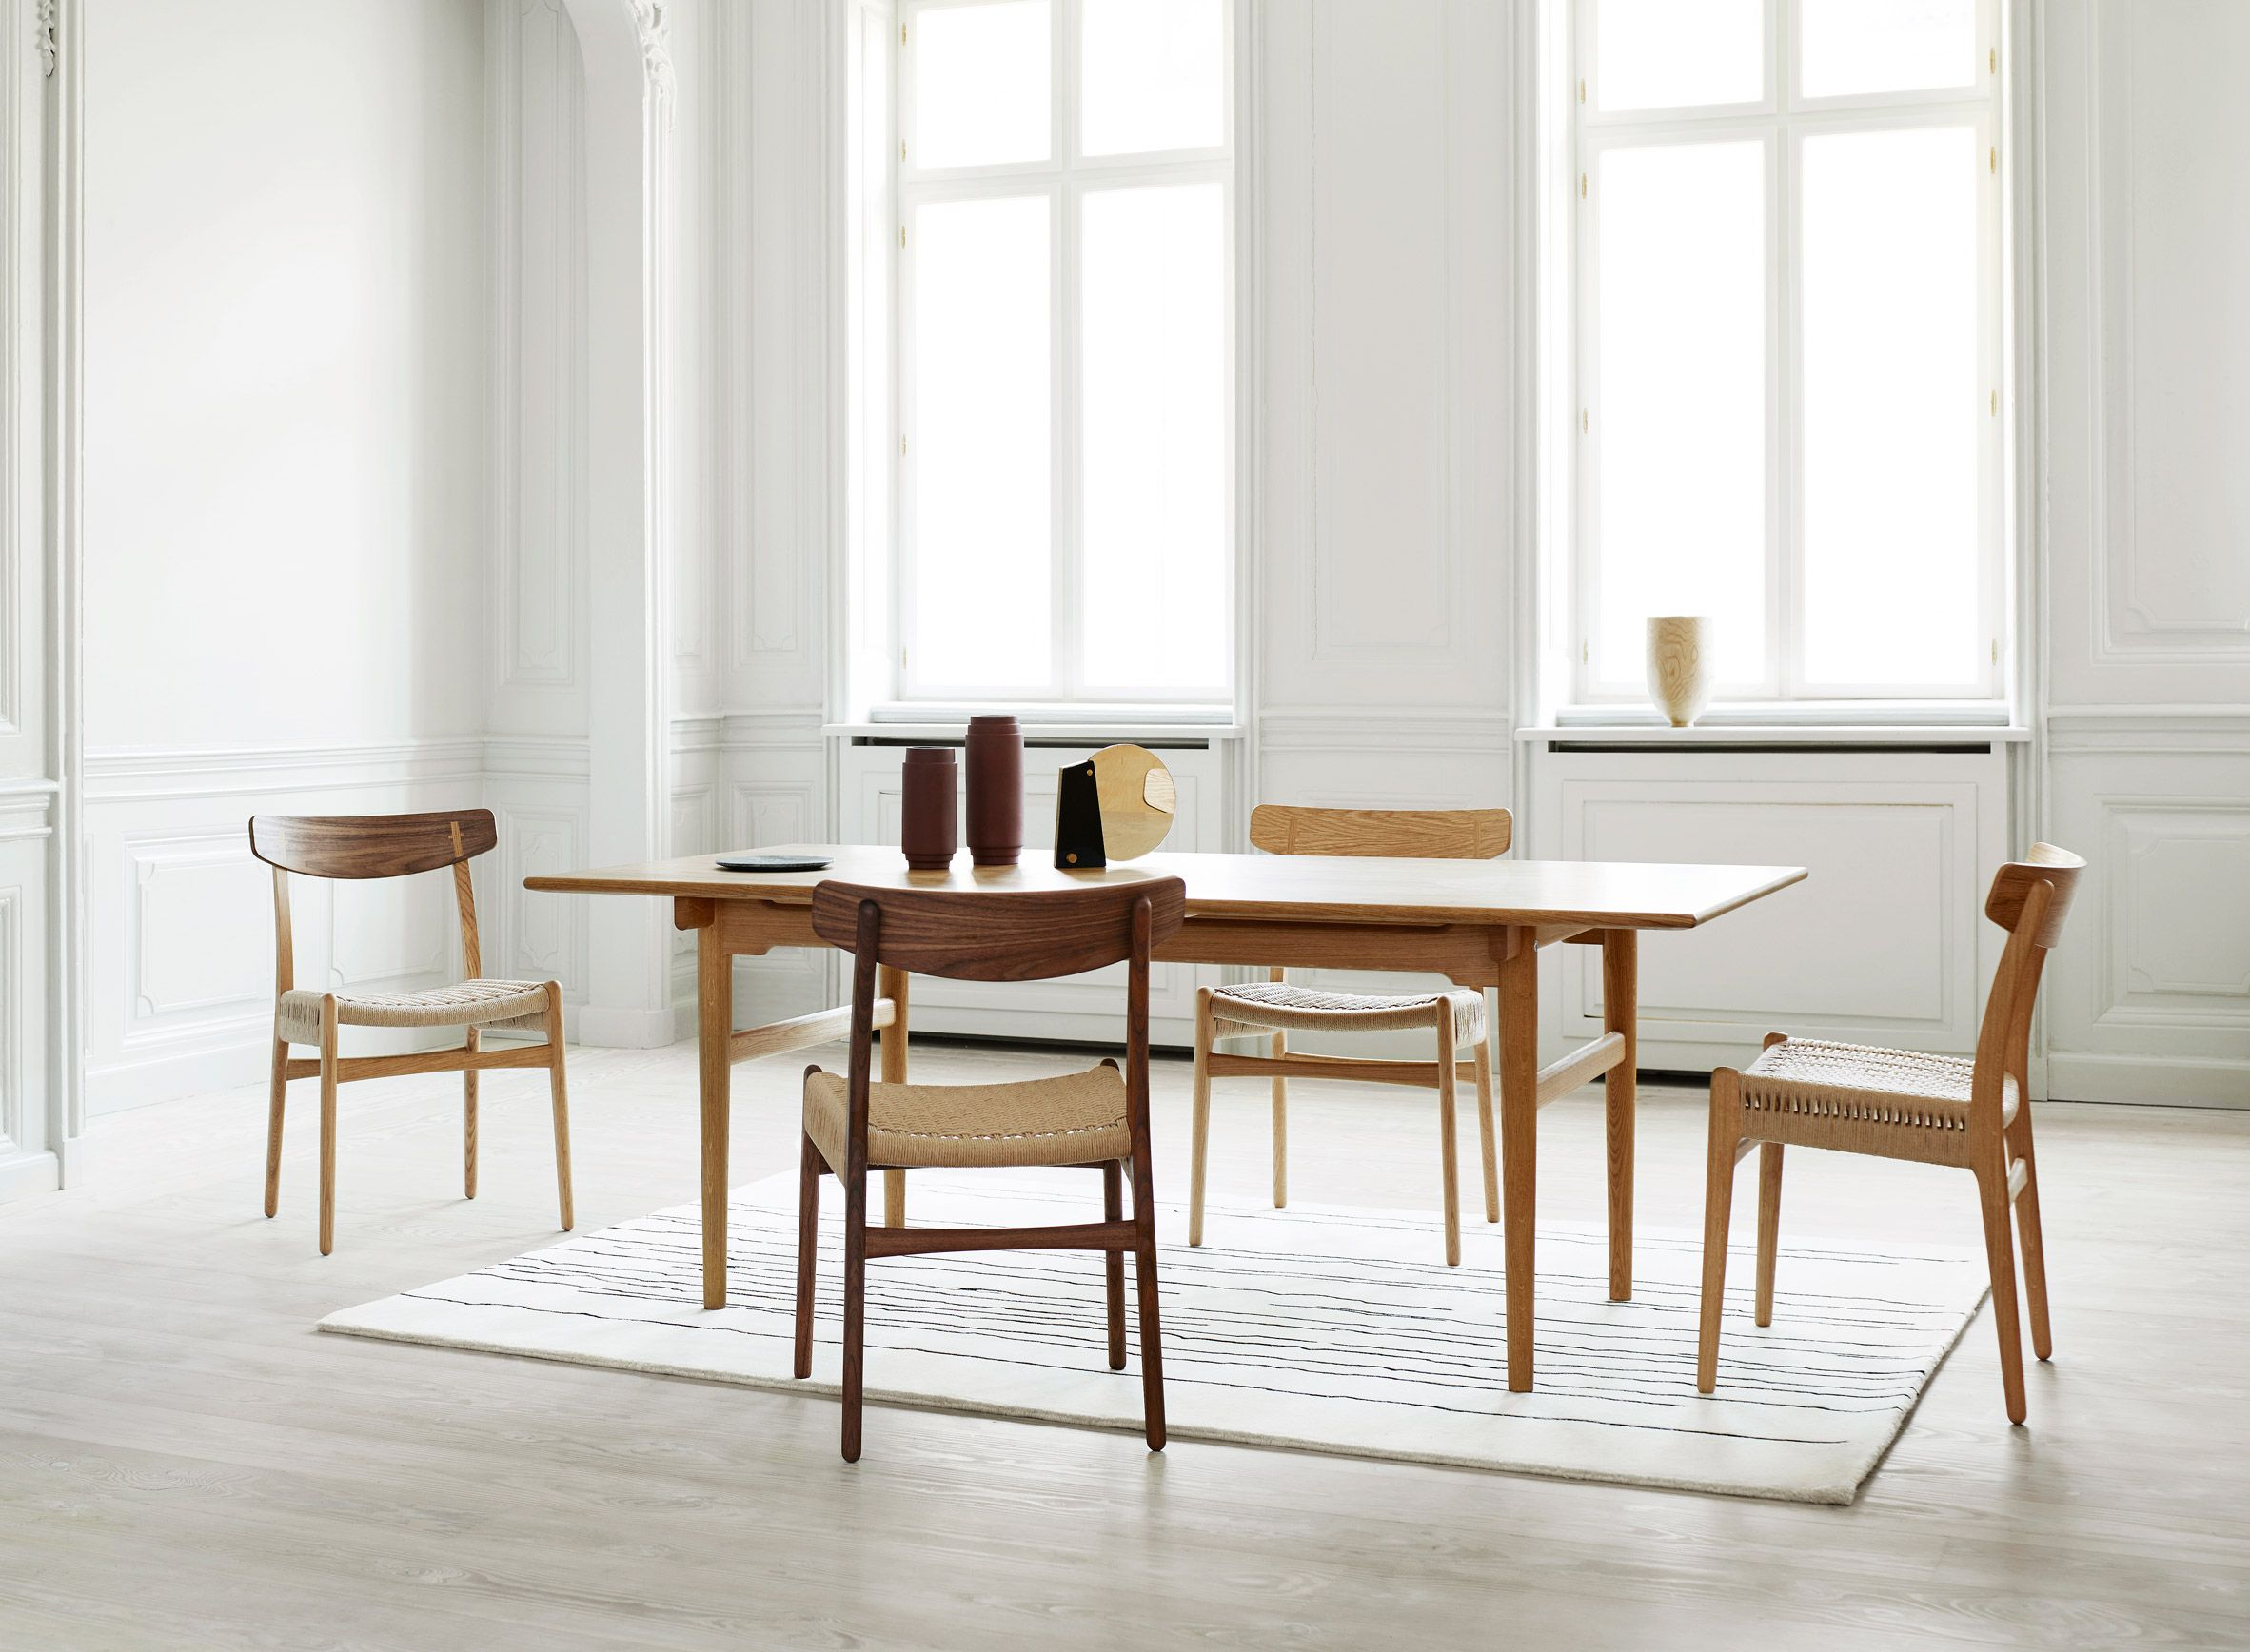 Carl Hansen & Son reissues final chair from original Hans J Wegner